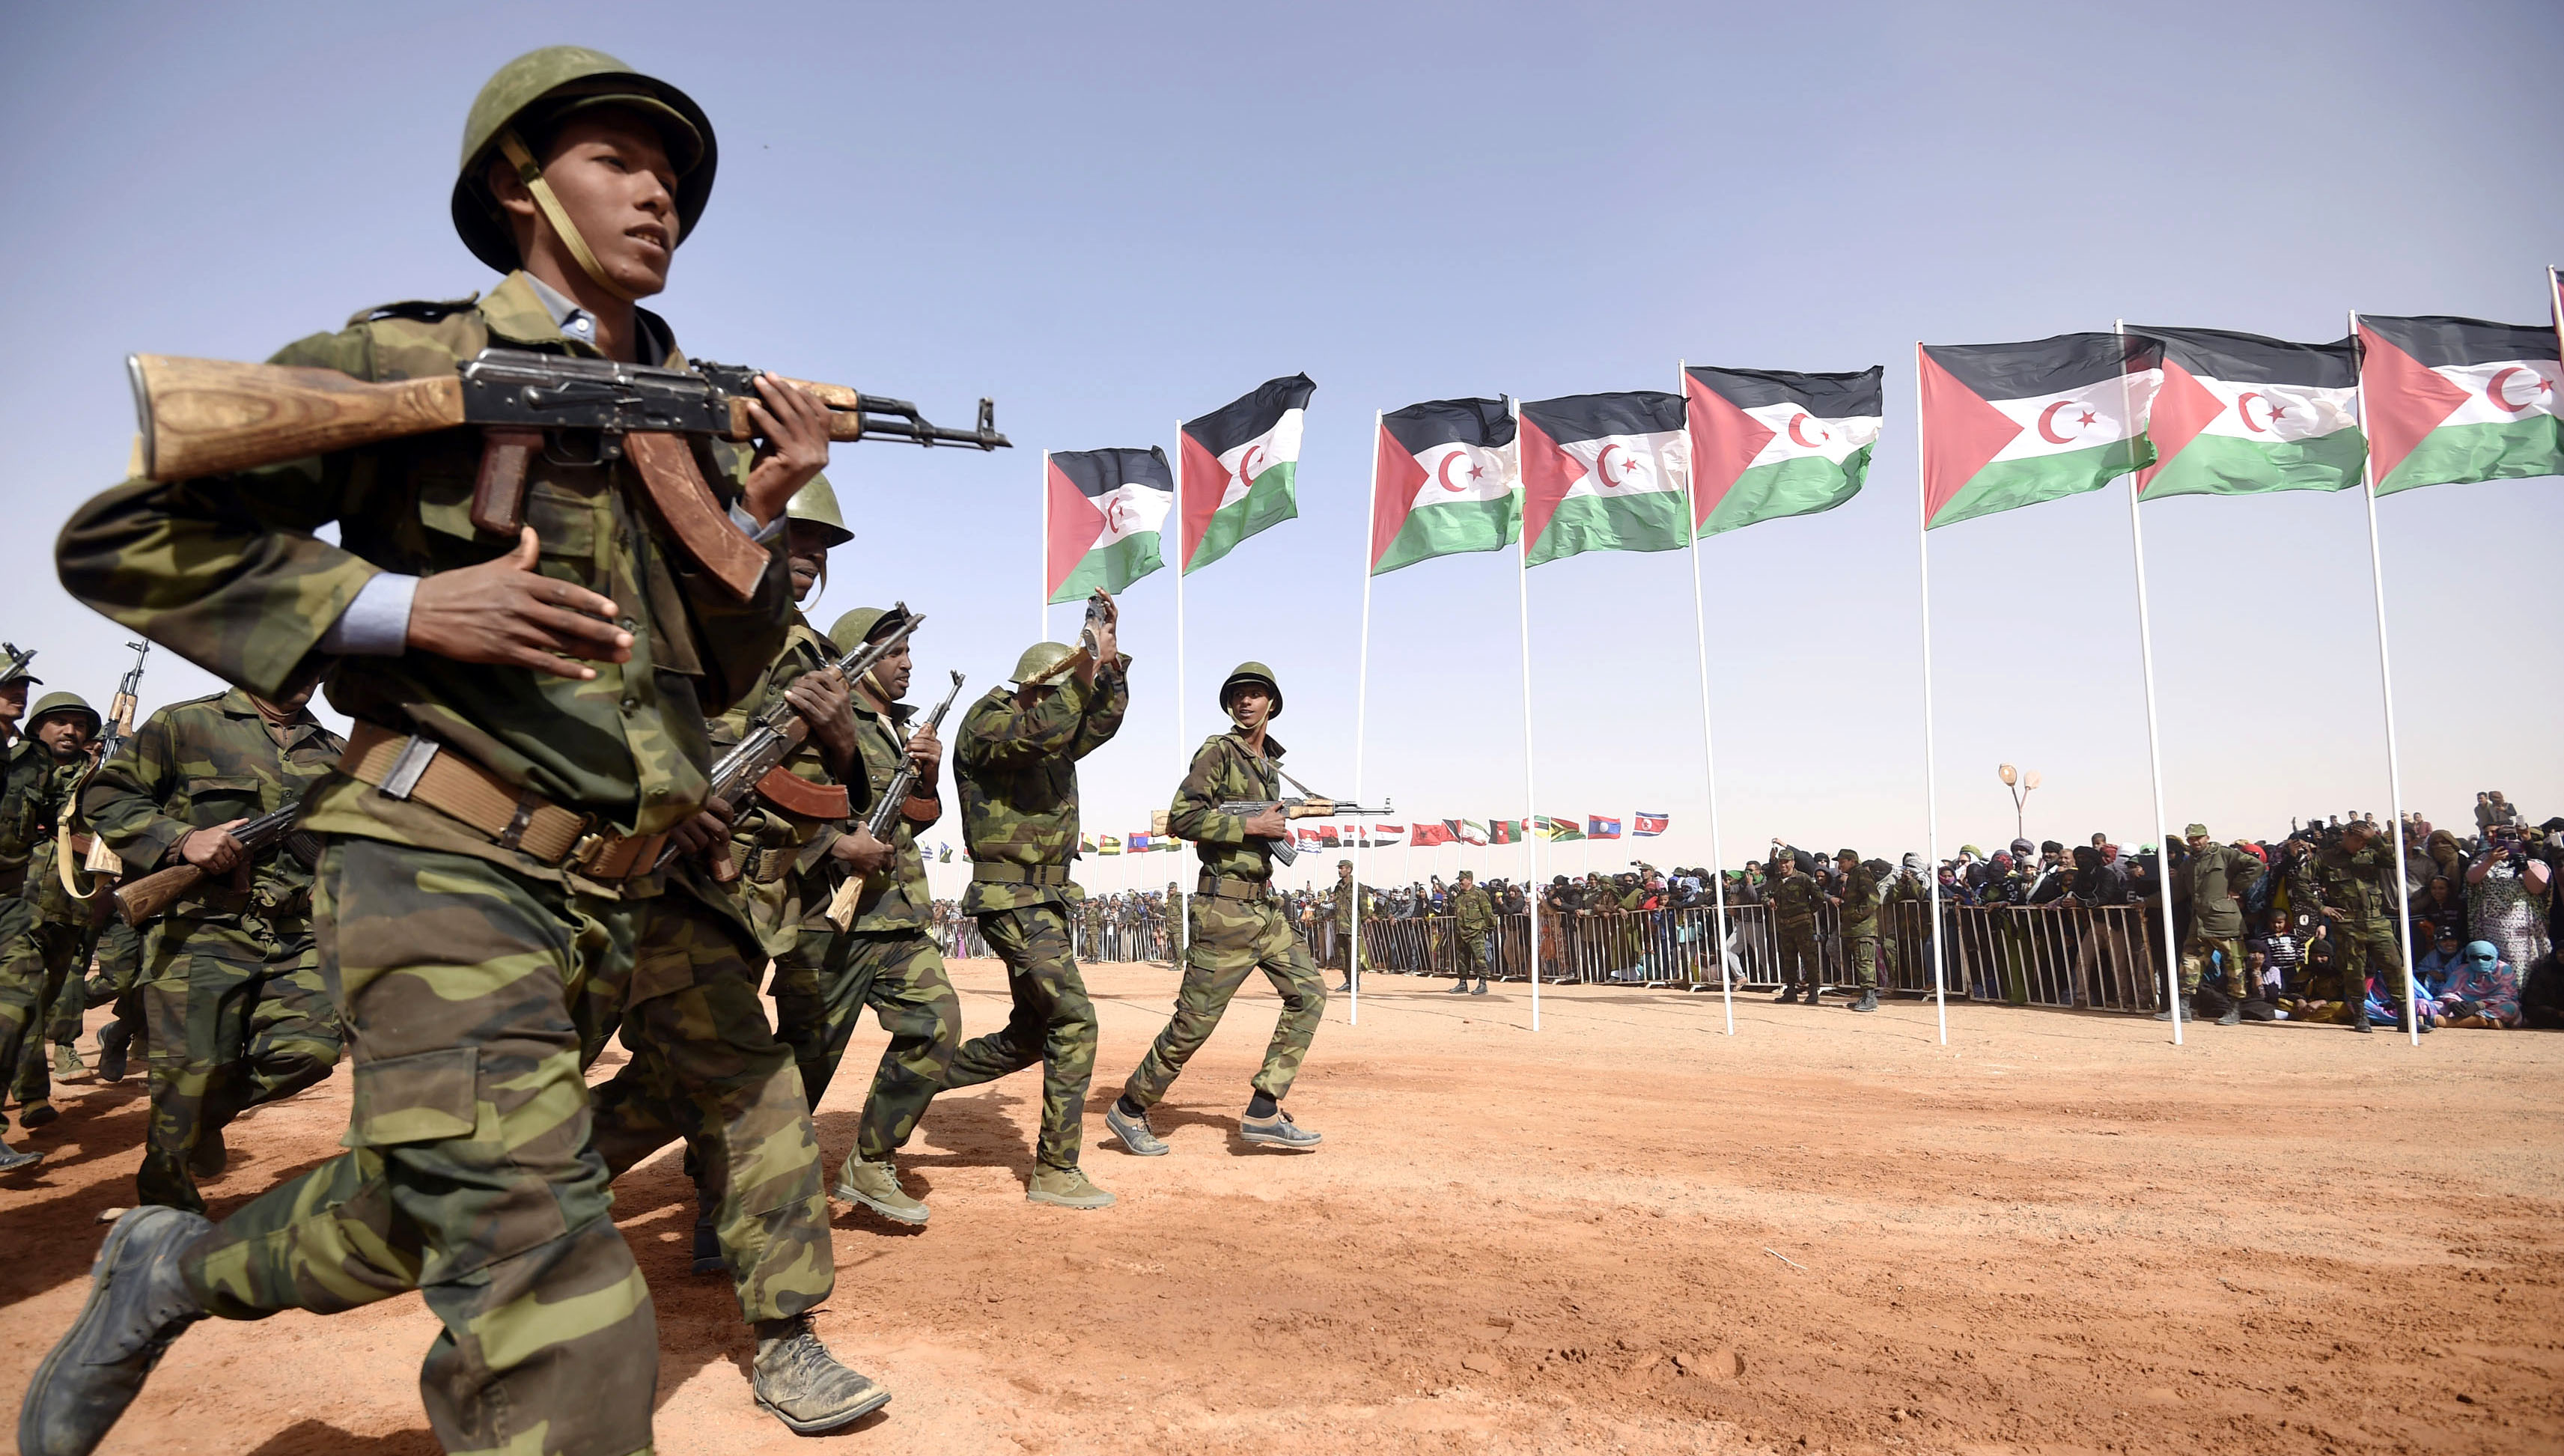 the impact of the western sahara conflict The madrid accords of 14 november 1975 ended the spanish colonization of western sahara, sparkling a long conflict  it has a negative impact on the south.